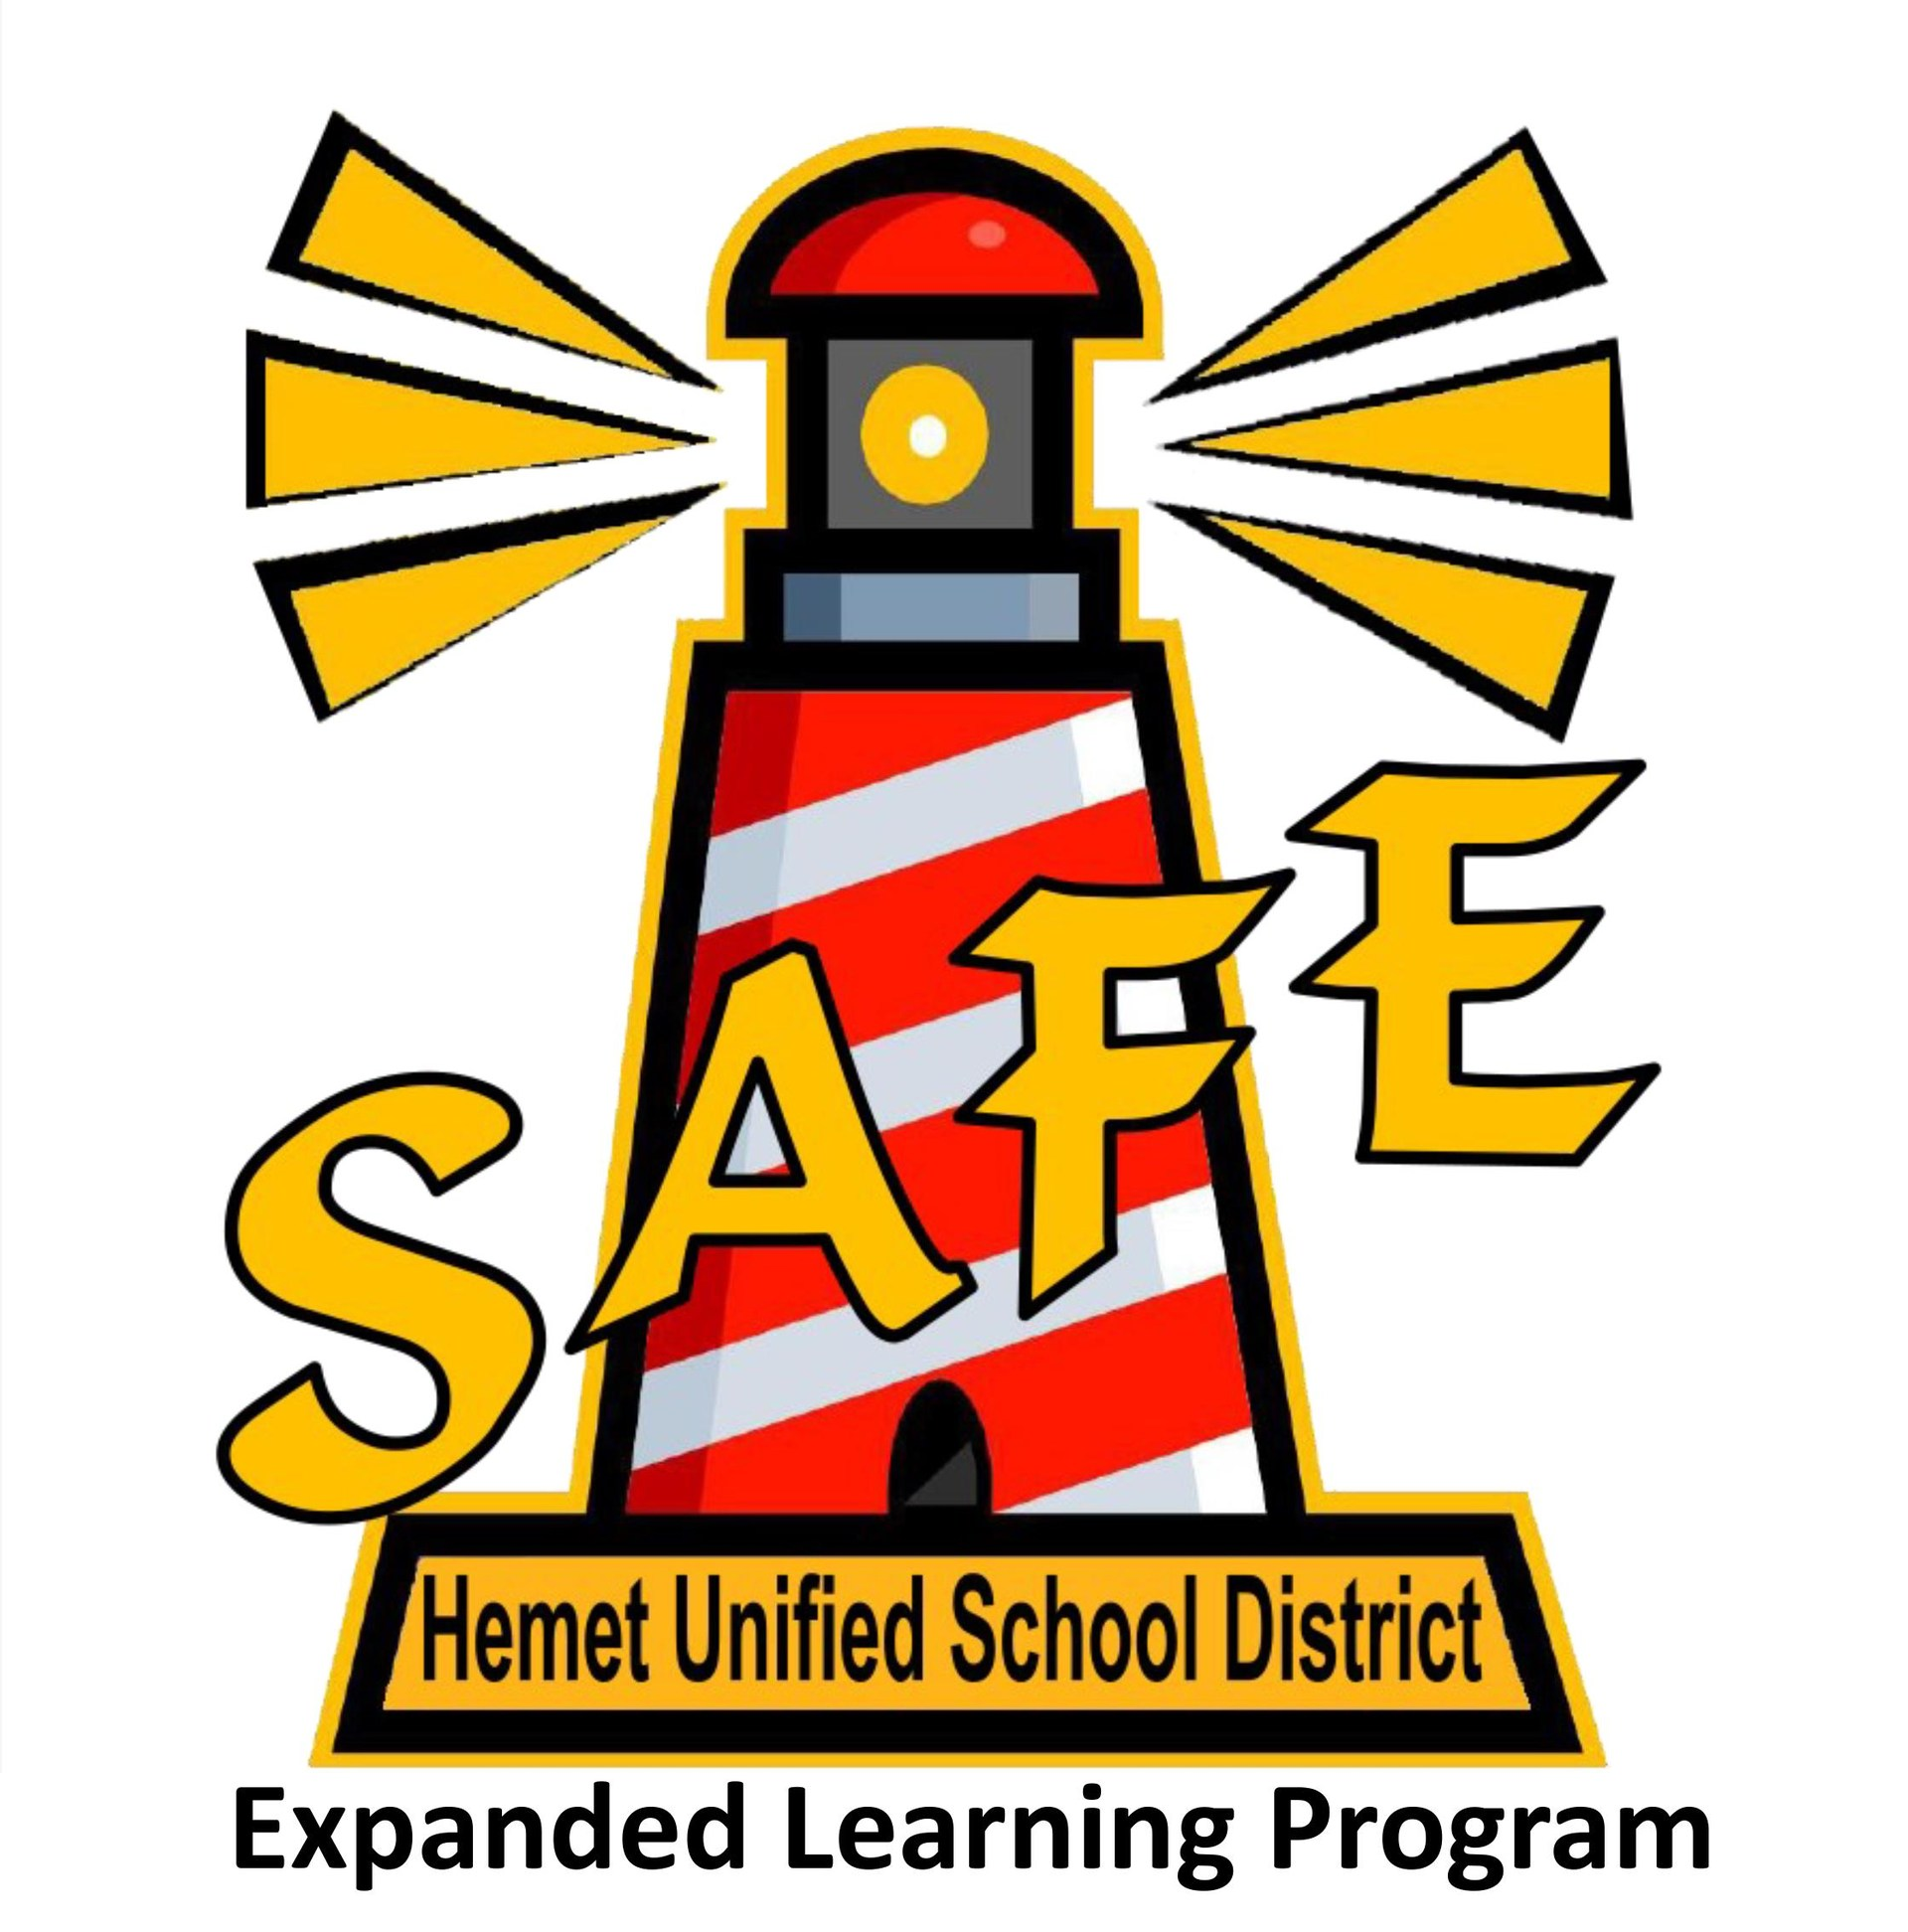 S A F E  & Zone After School Expanded Learning Programs